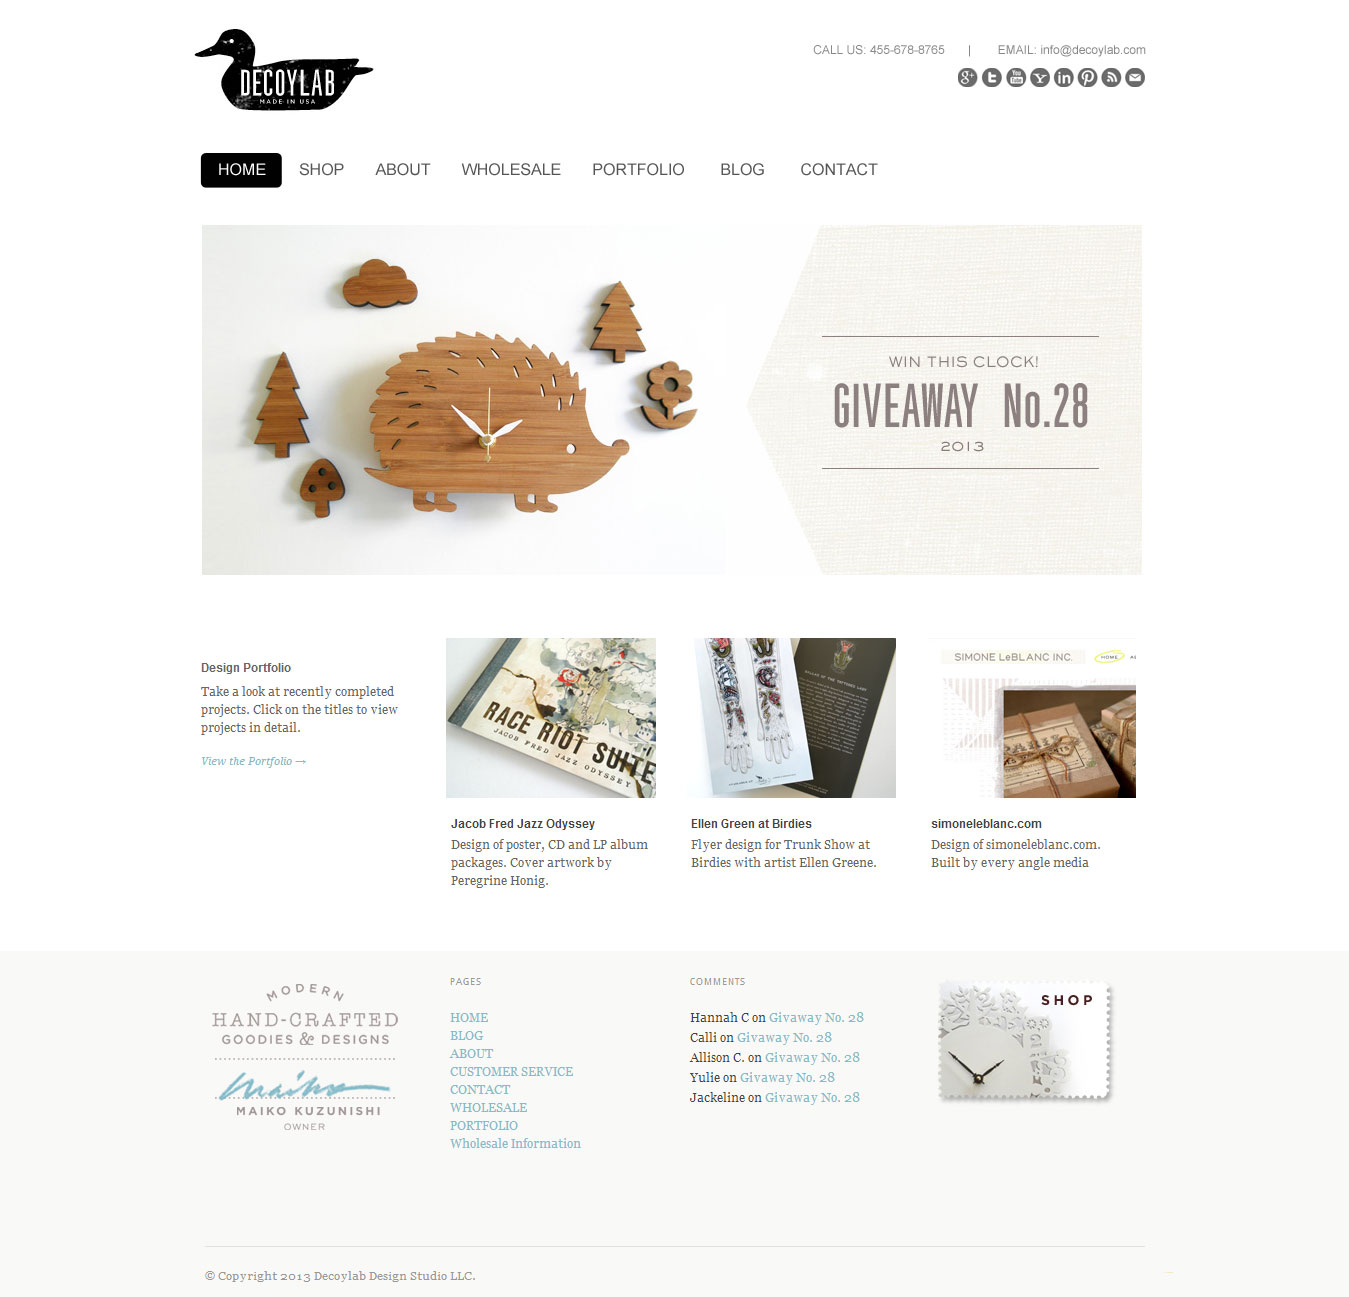 Weebly Templates & Themes for E-Commerce Online Shops